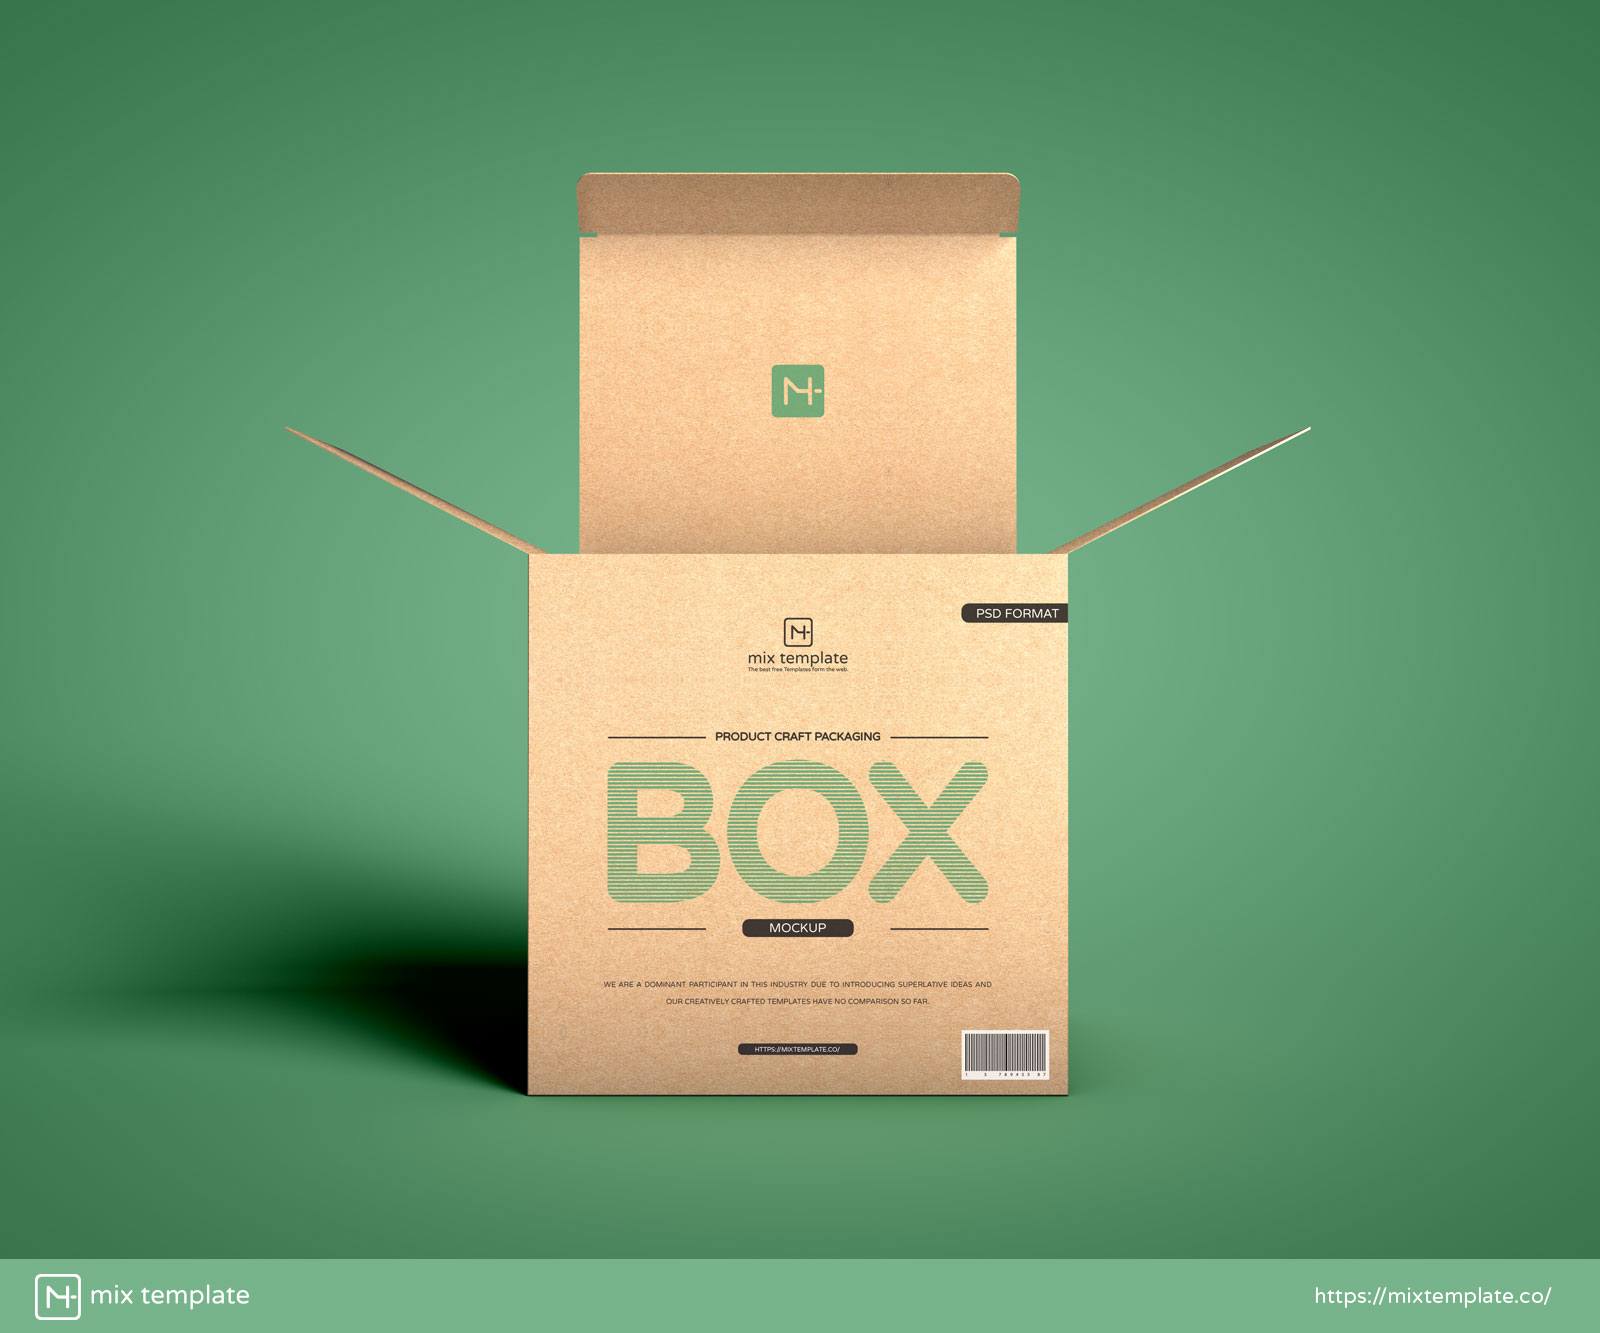 Free-Product-Craft-Box-Packaging-Mockup-Template-38